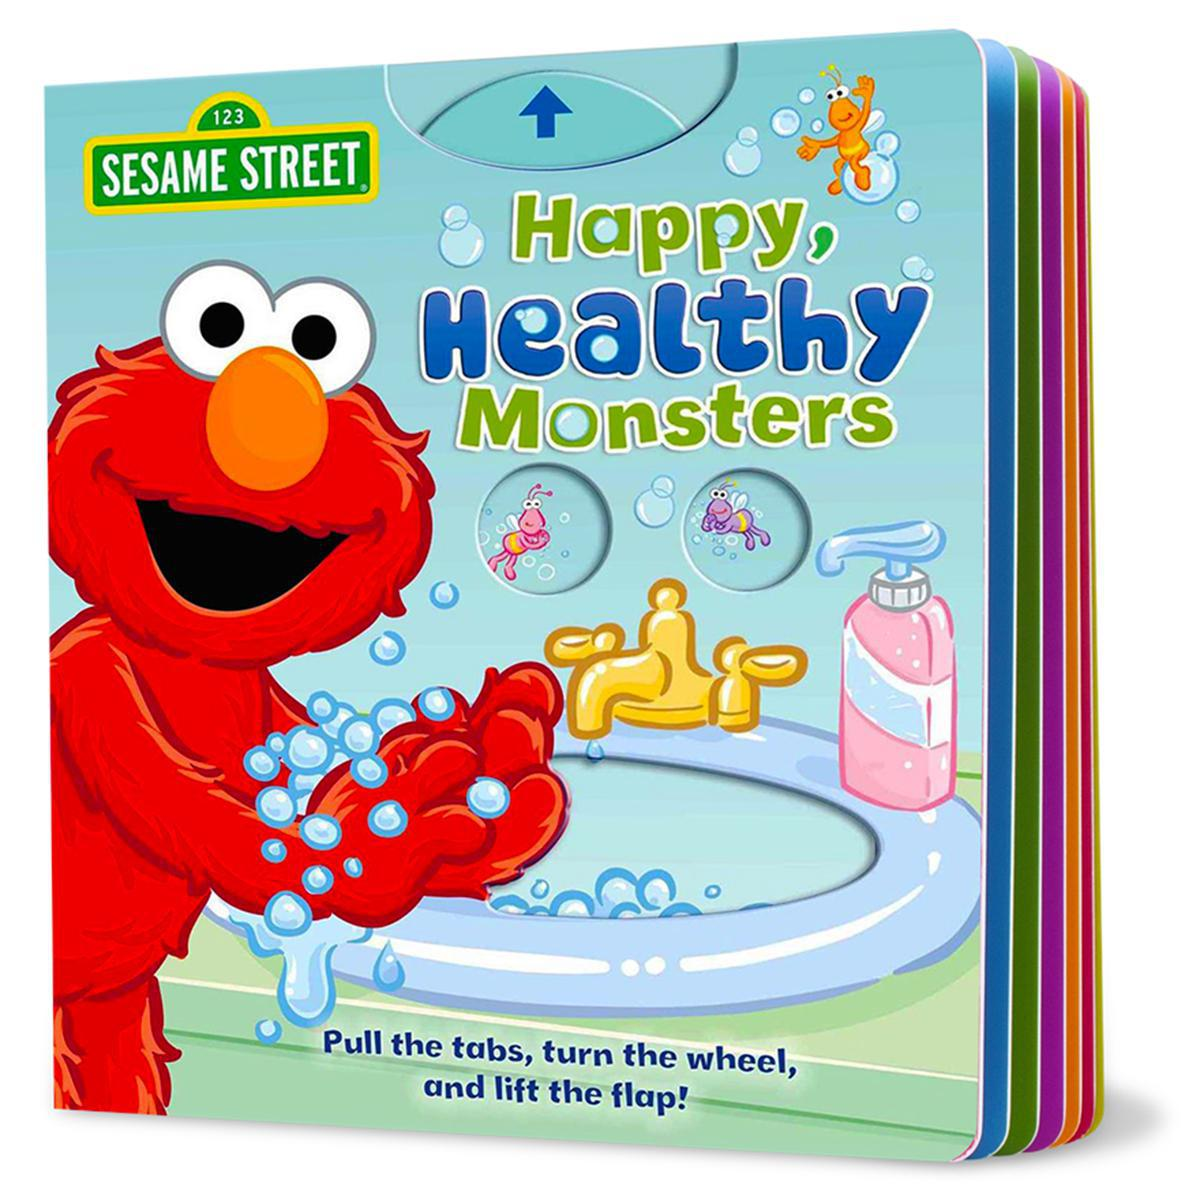 Sesame Street®: Happy, Healthy Monsters